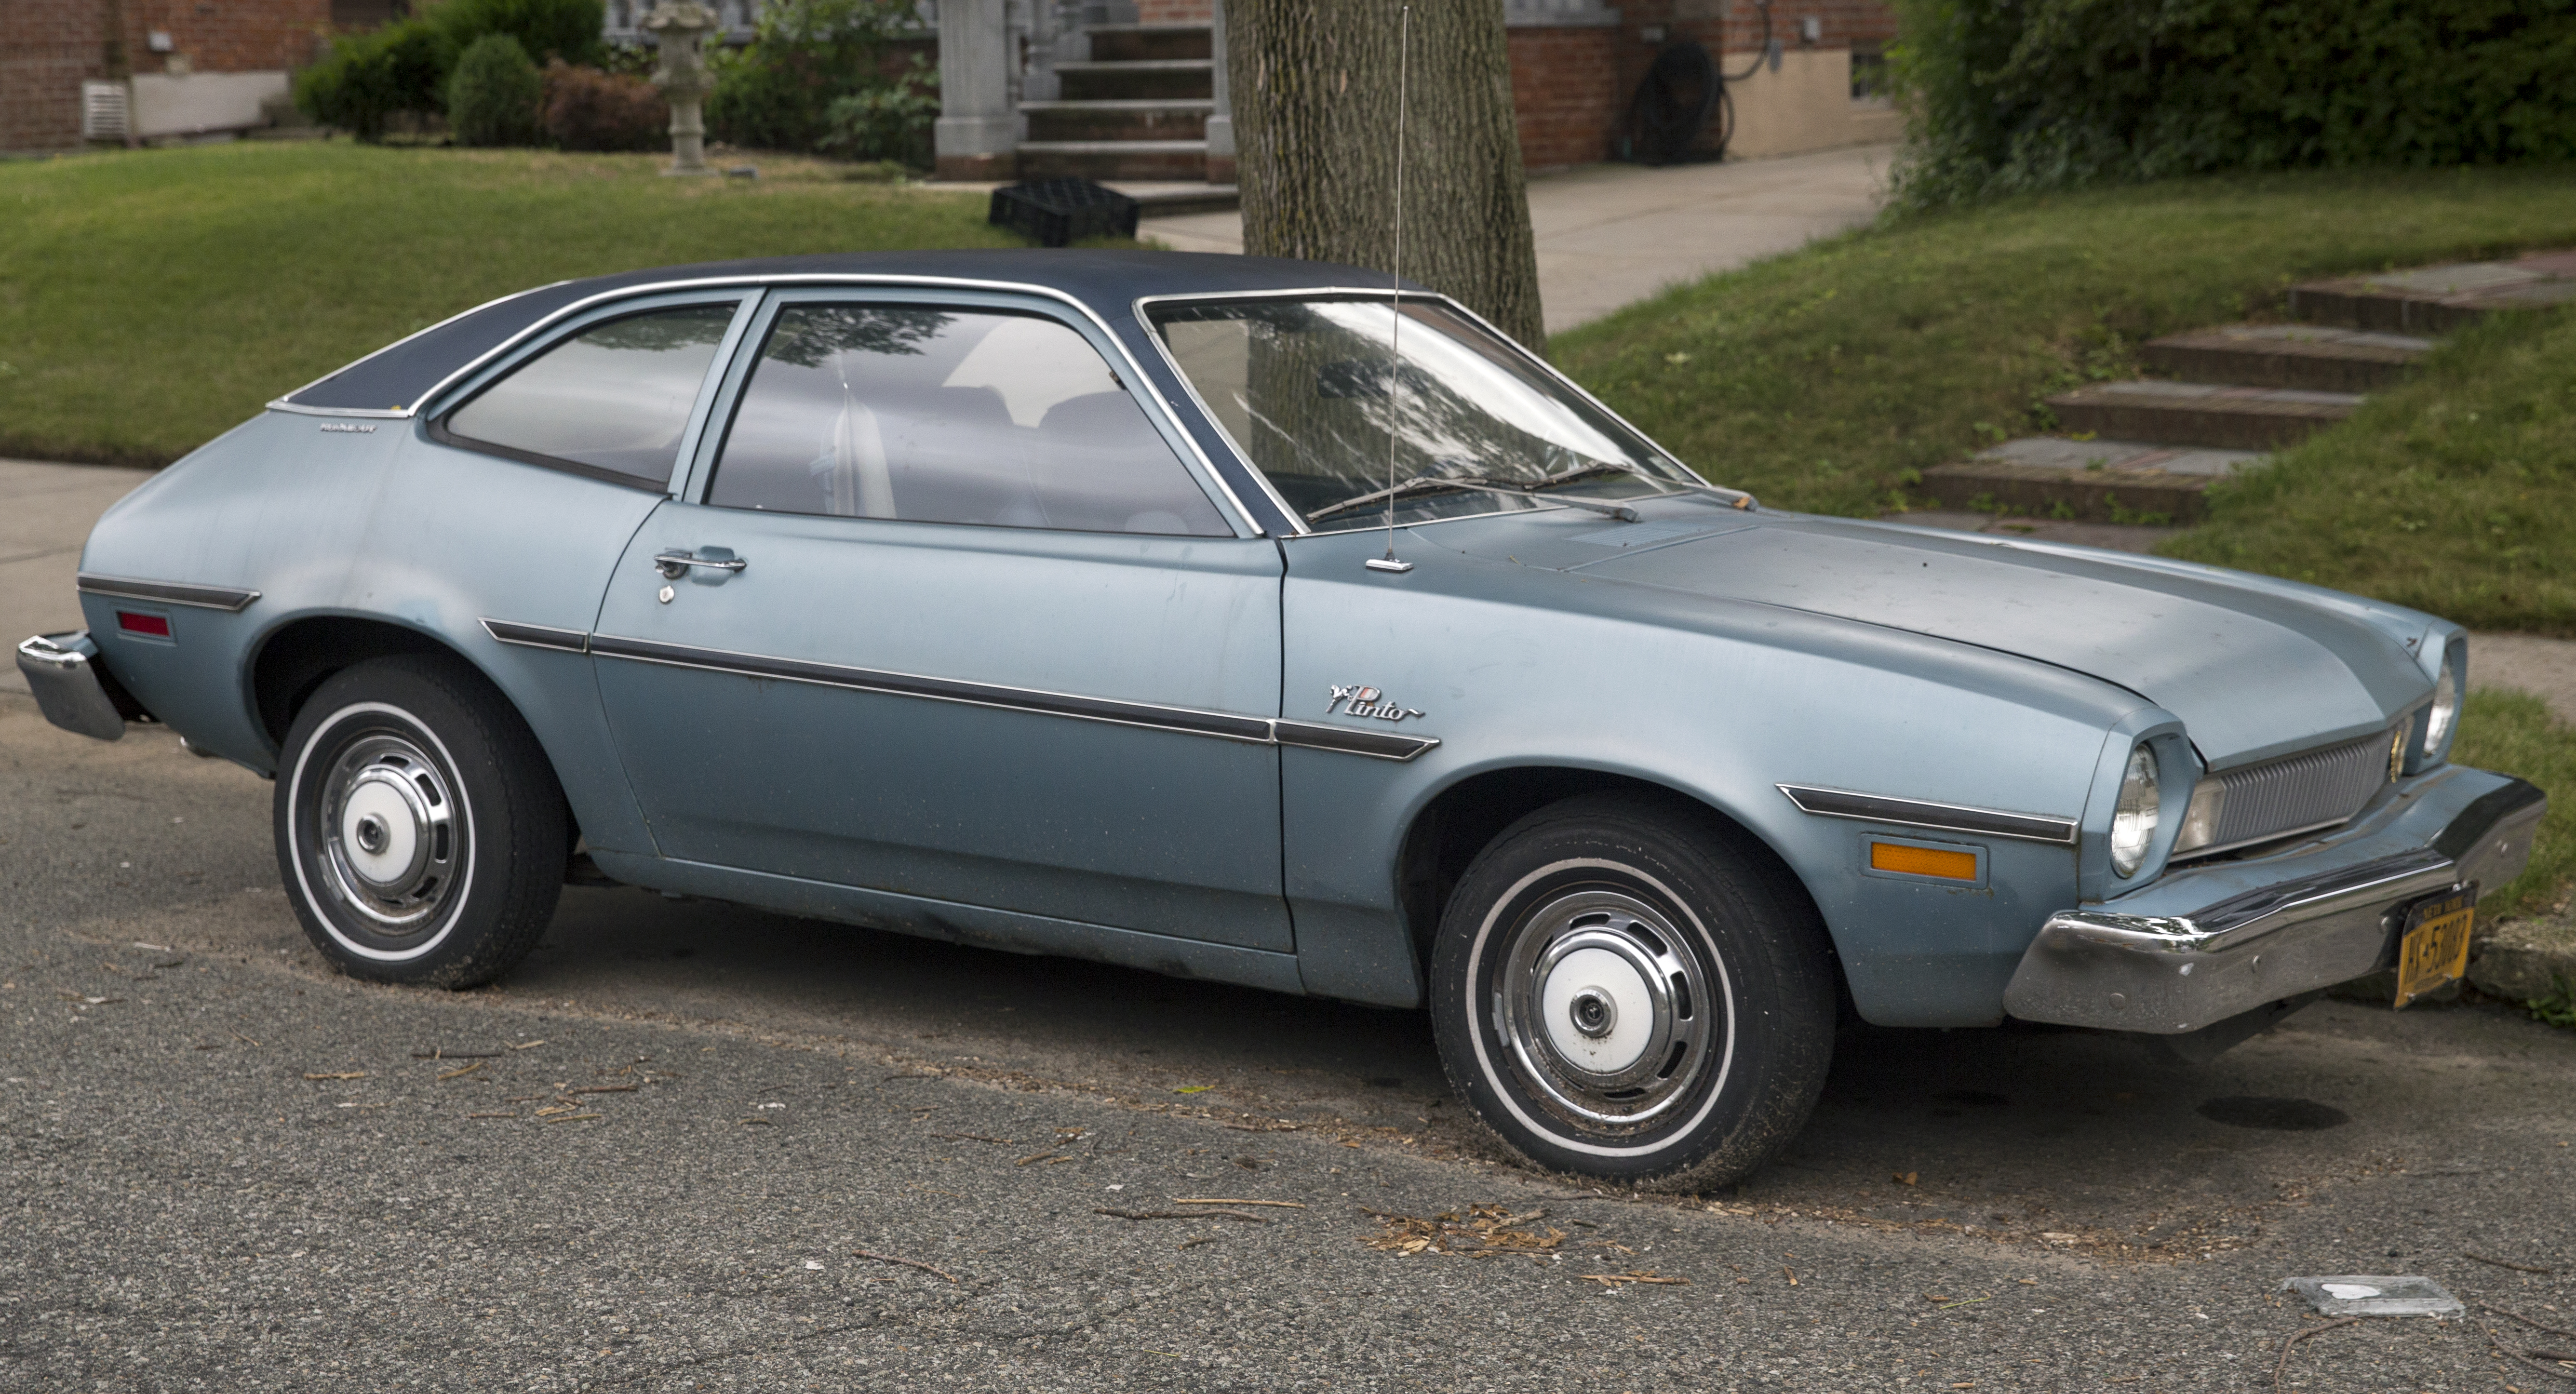 1975_Ford_Pinto_Runabout_2.8V6%2C_front_